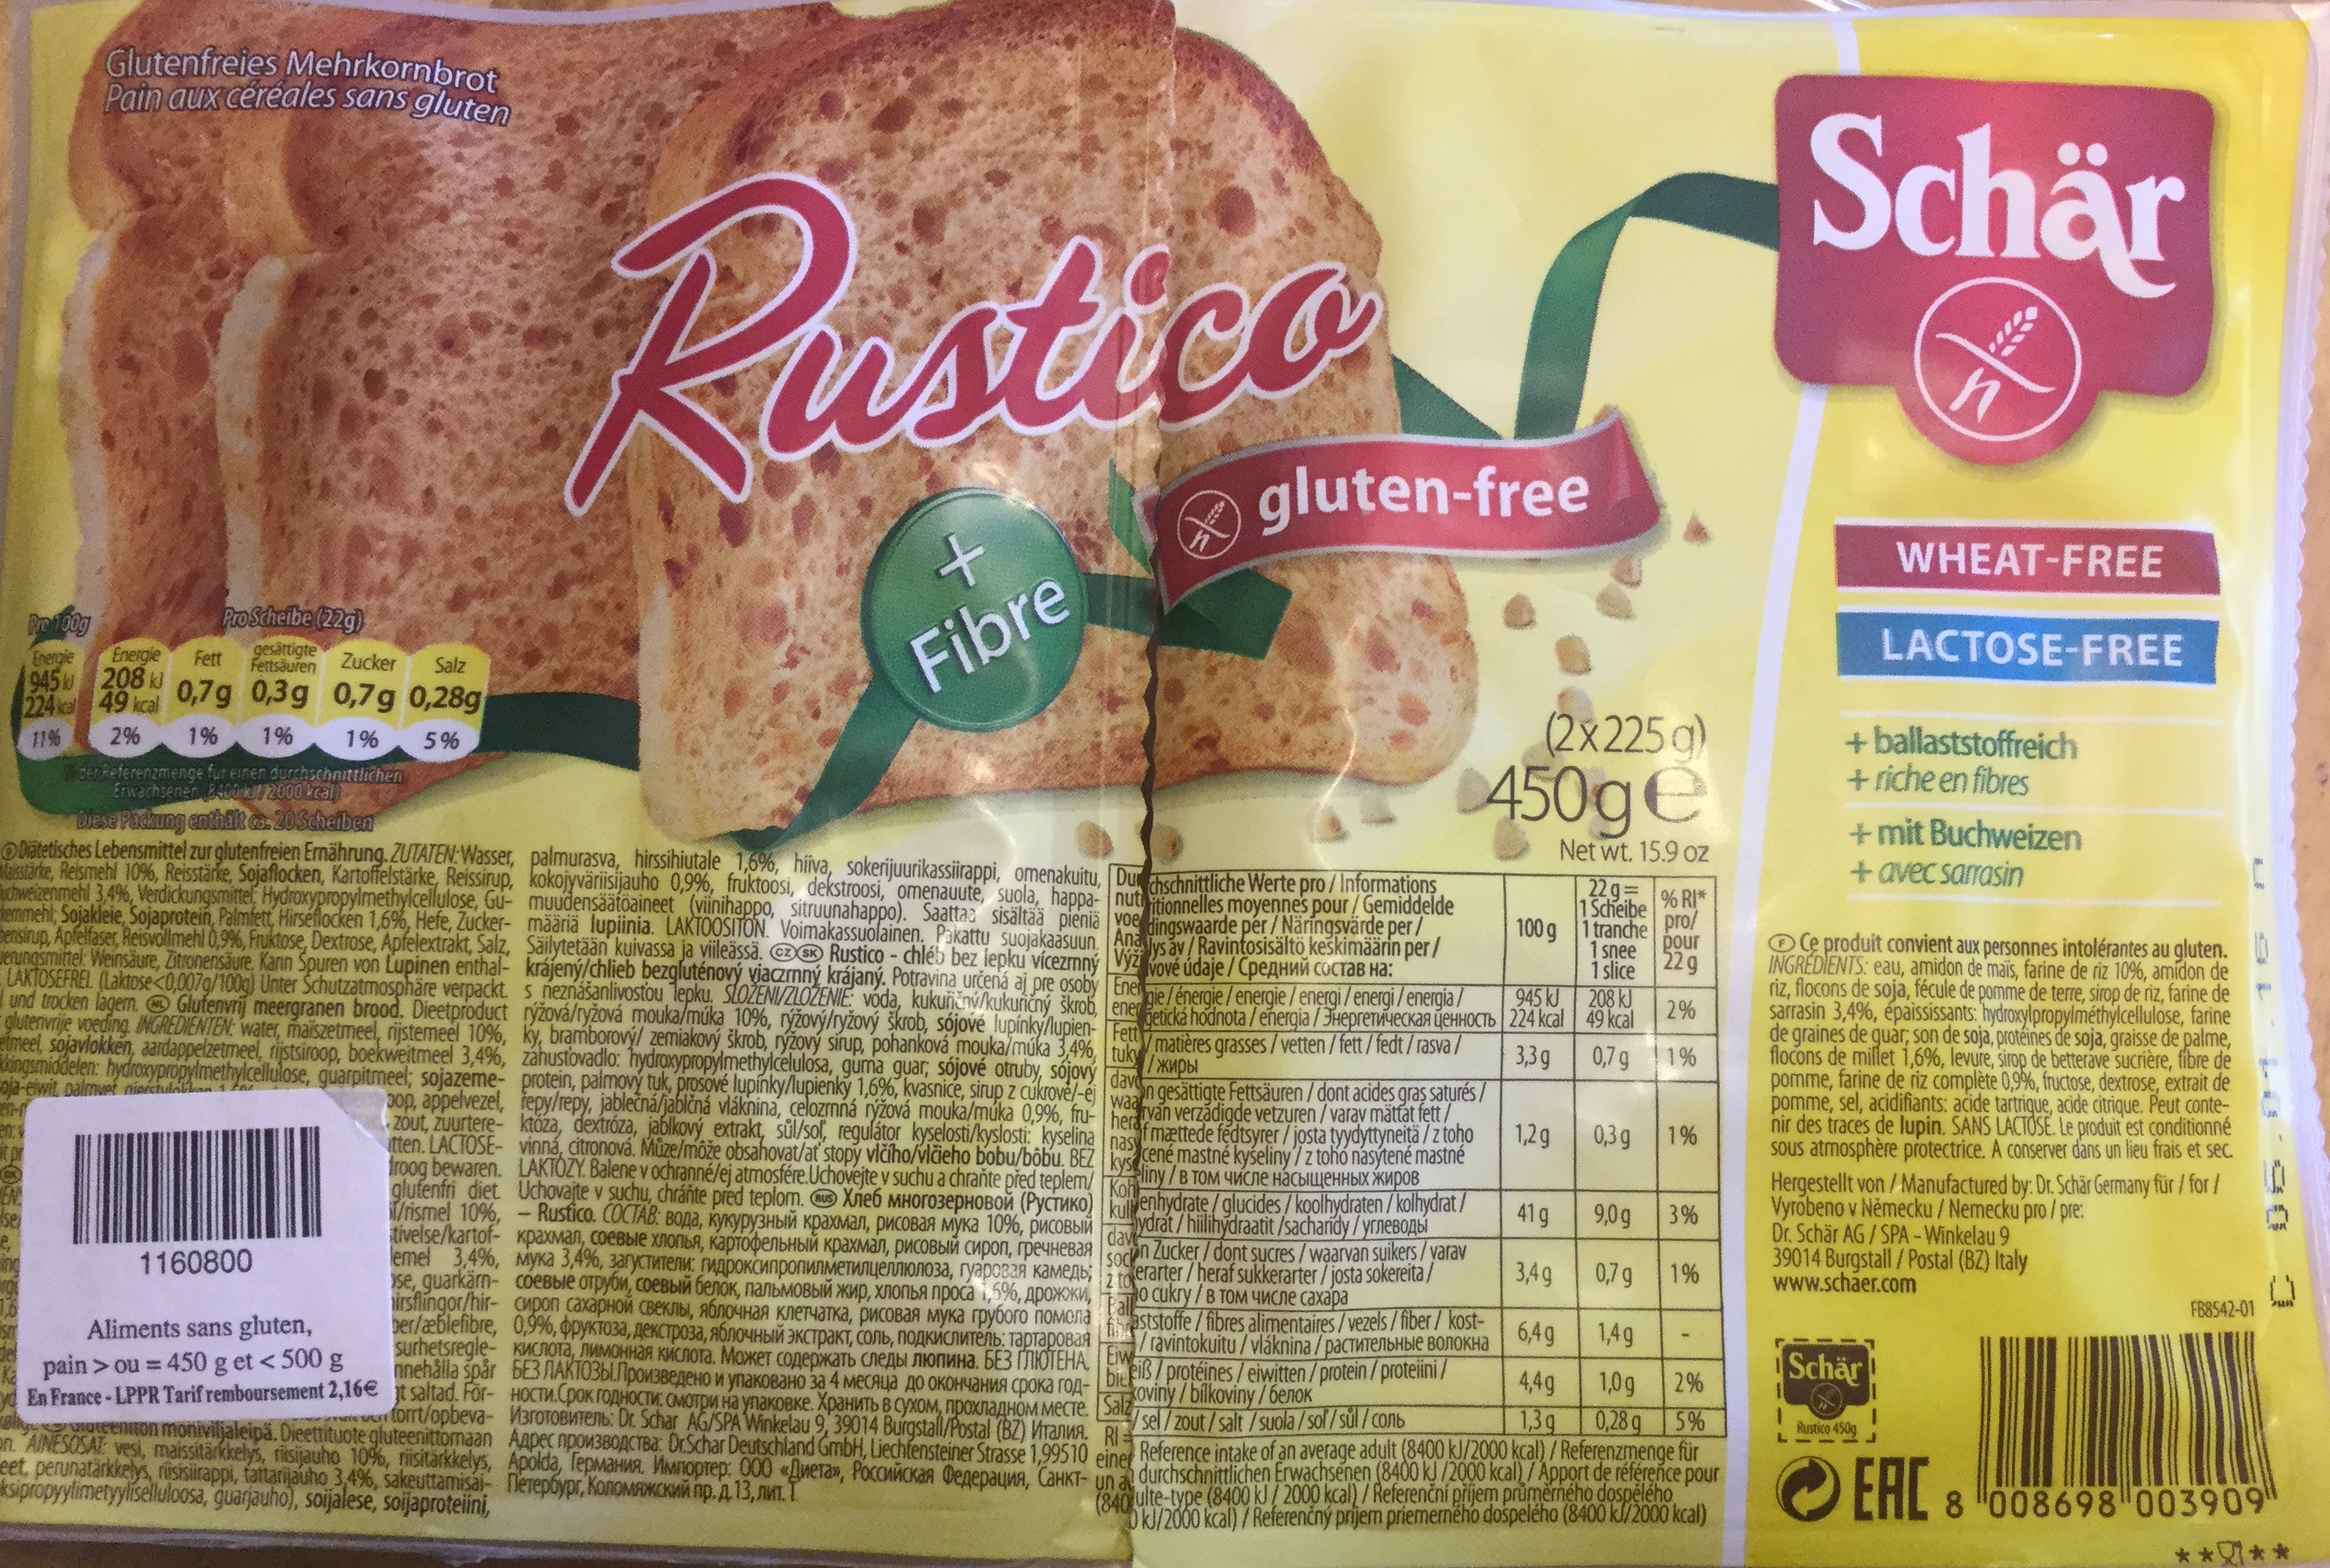 Rustica - Product - fr